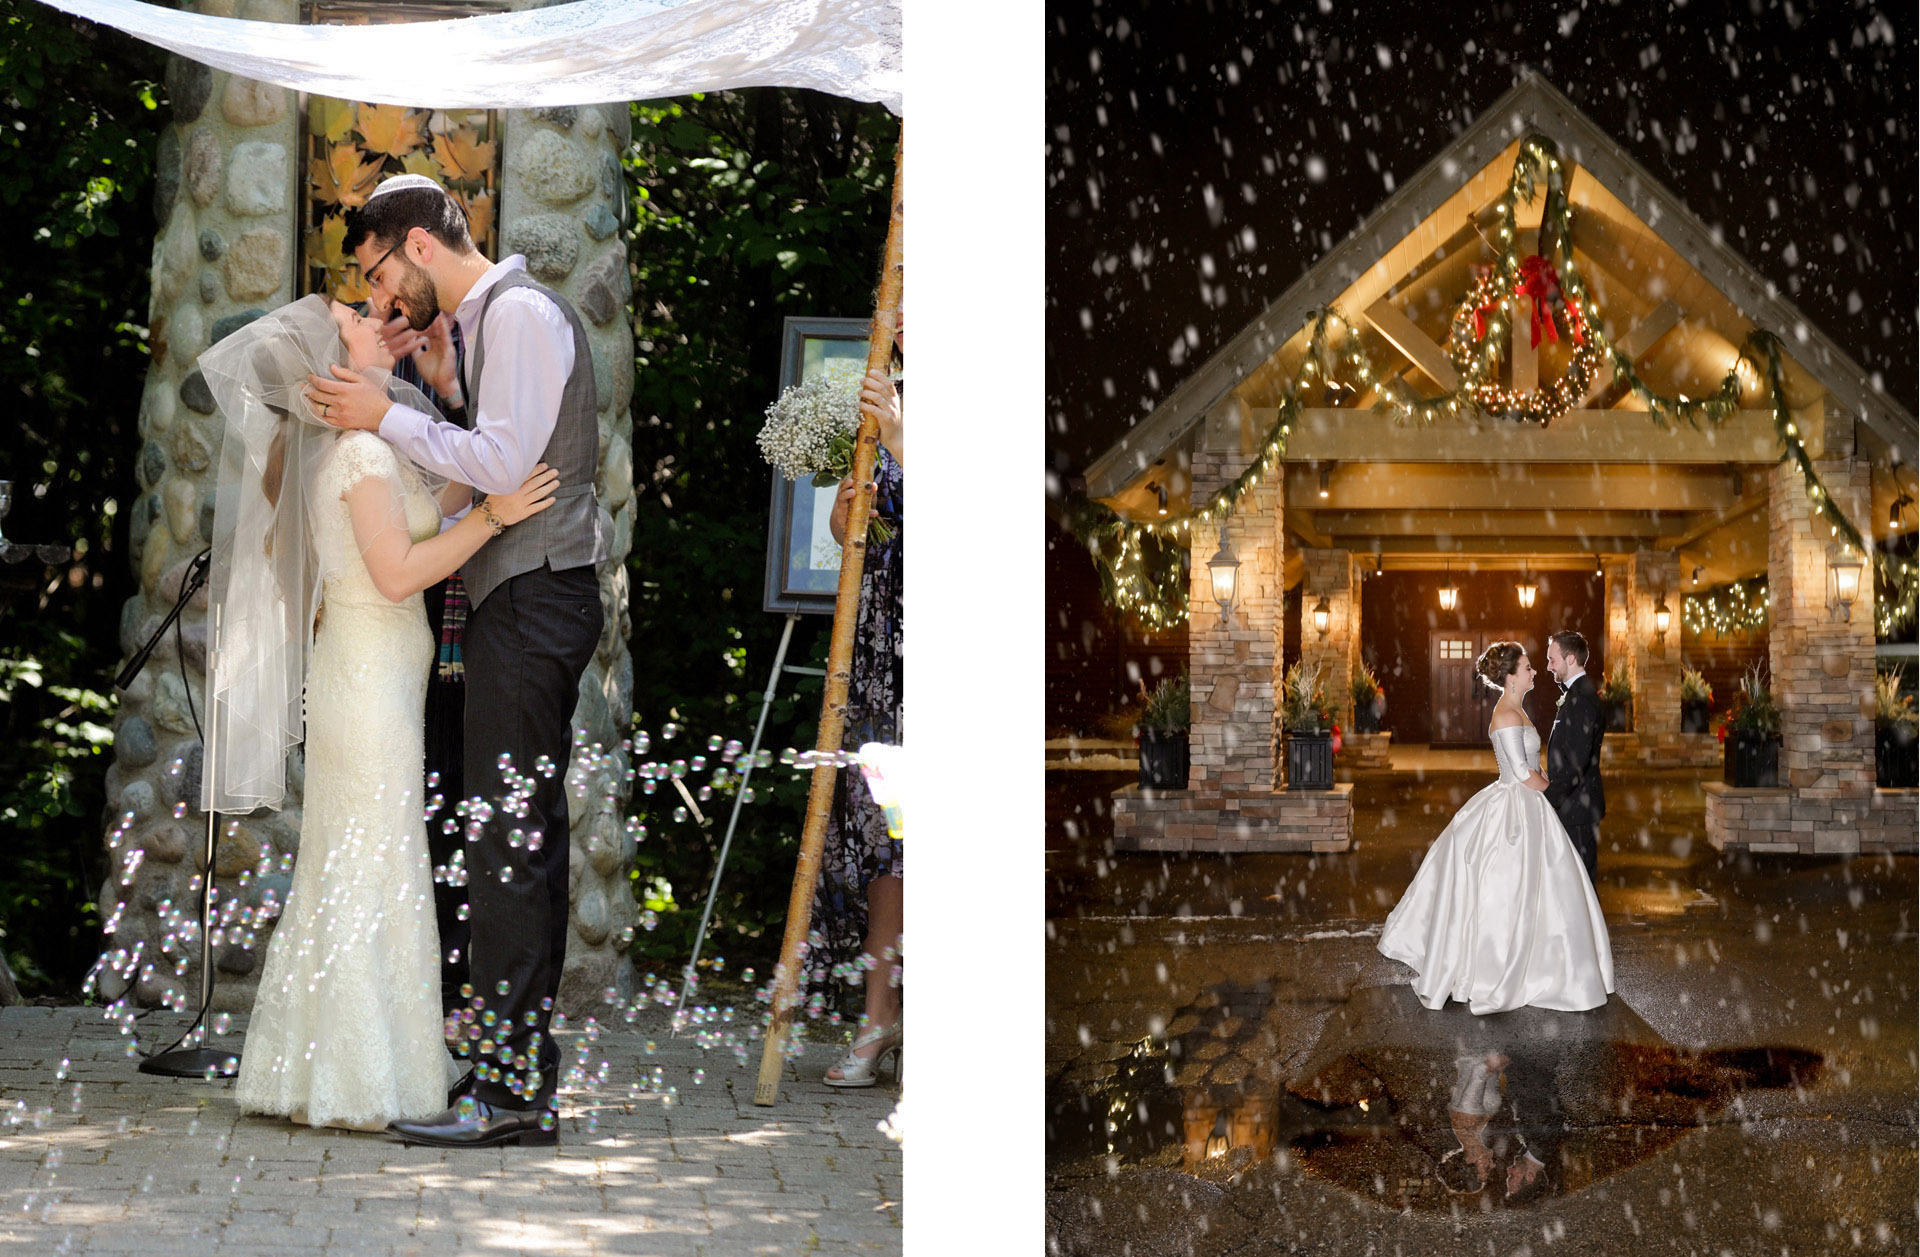 michigan wedding photographer photographs a Jewish couple kissing under the chuppah amidst bubbles at their Troy Wedding along with a close up photo of rings.